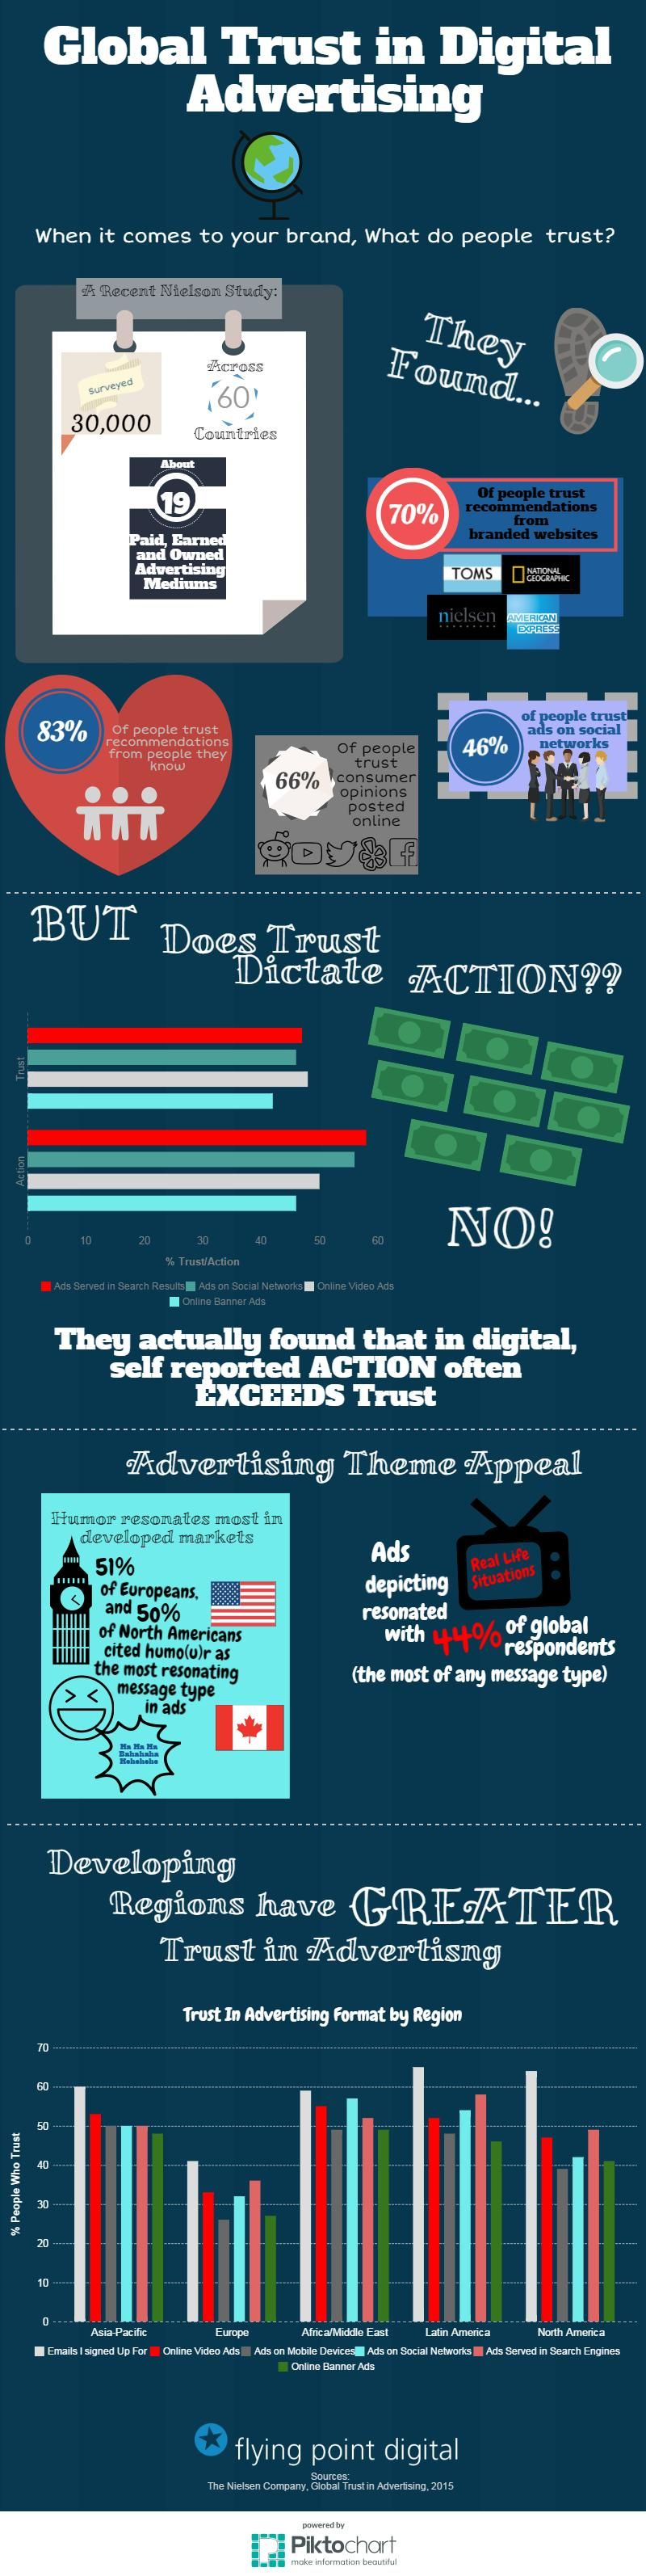 DIGITAL ADVERTISING STRATEGIES: 2015 GLOBAL INSIGHTS #infographic